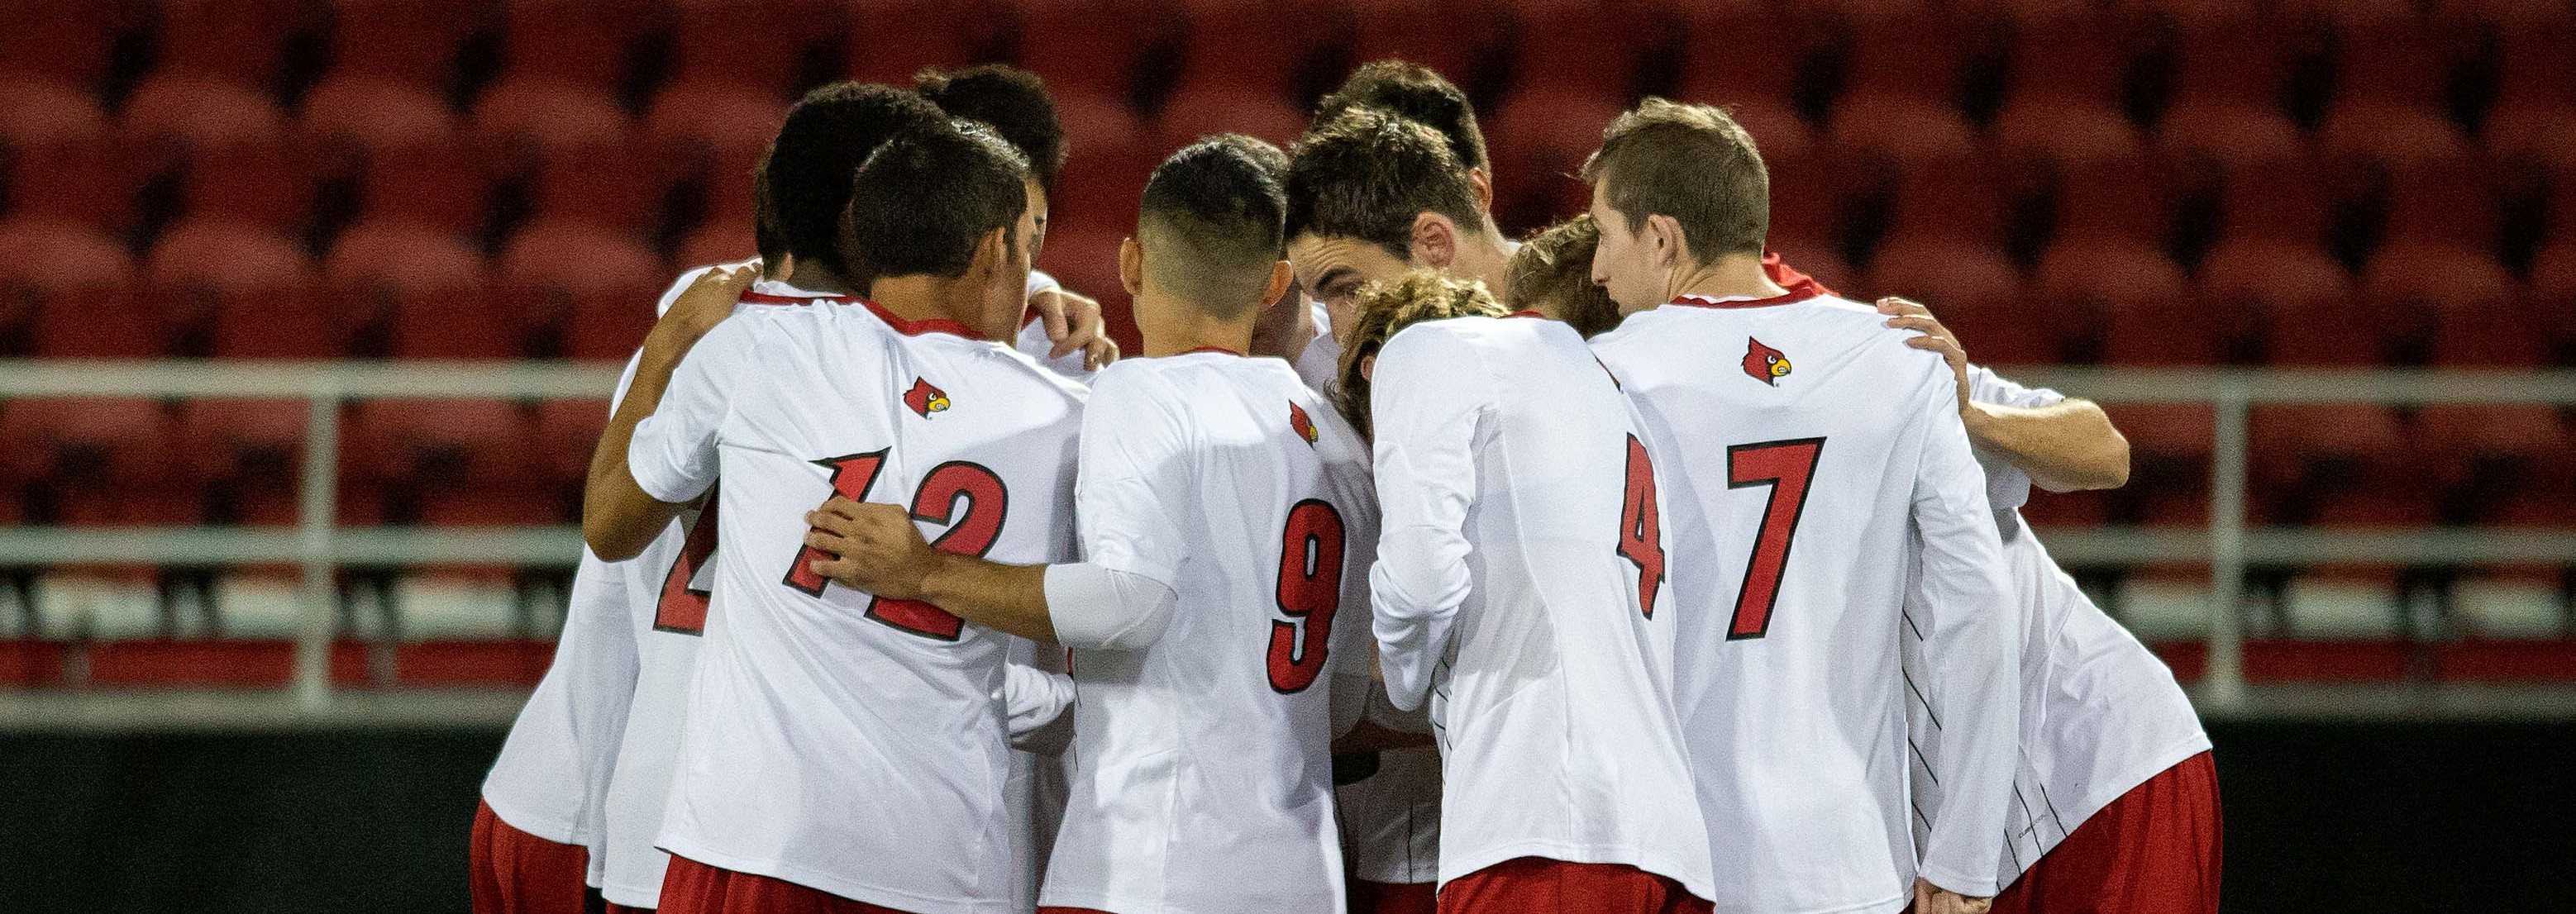 Louisville Soccer 2014 Photo by Adam Creech Fitted